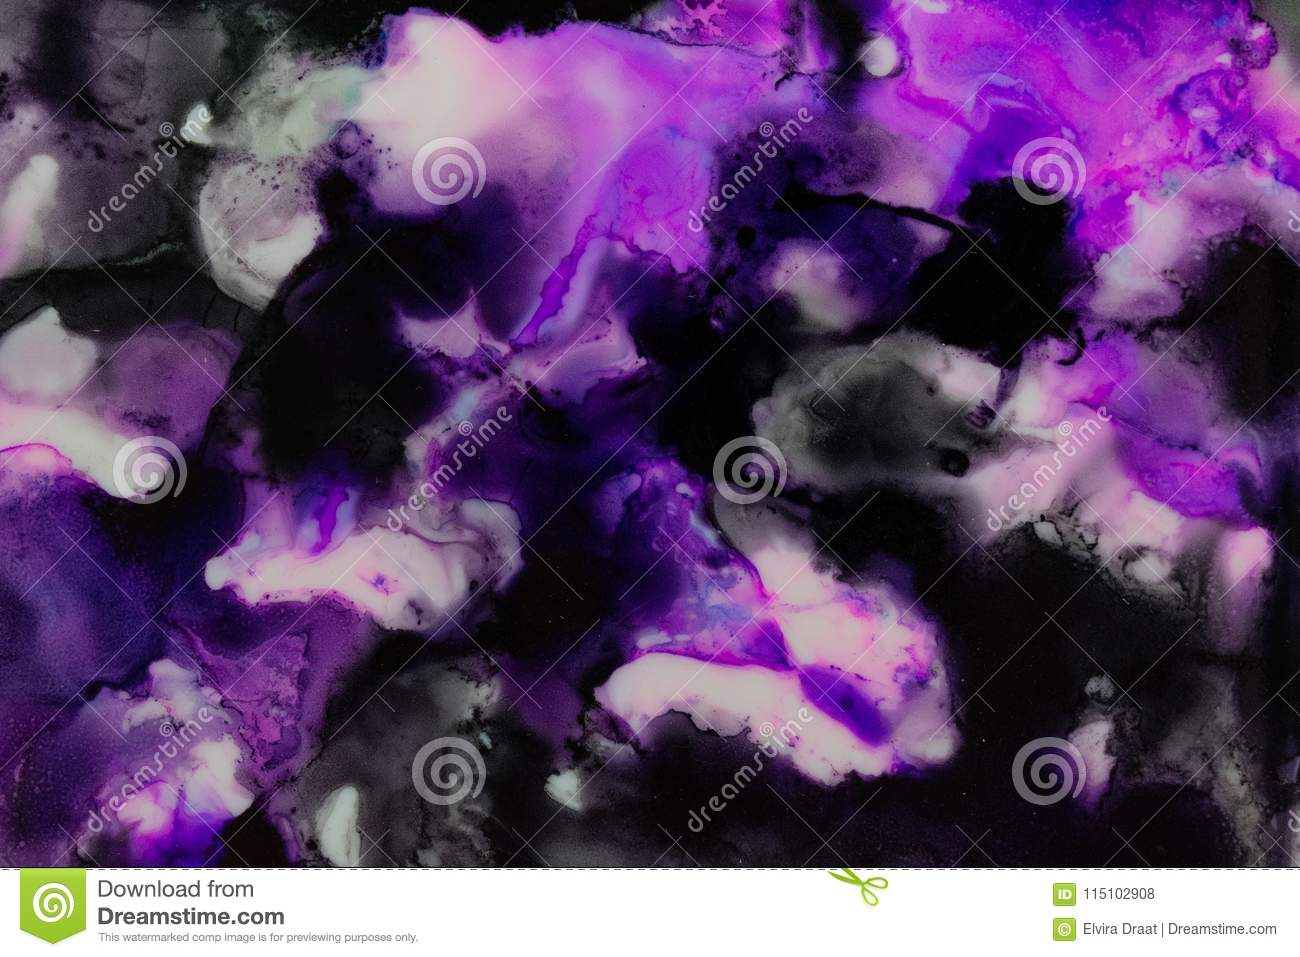 Watercolor with purple black and white galaxy splatter